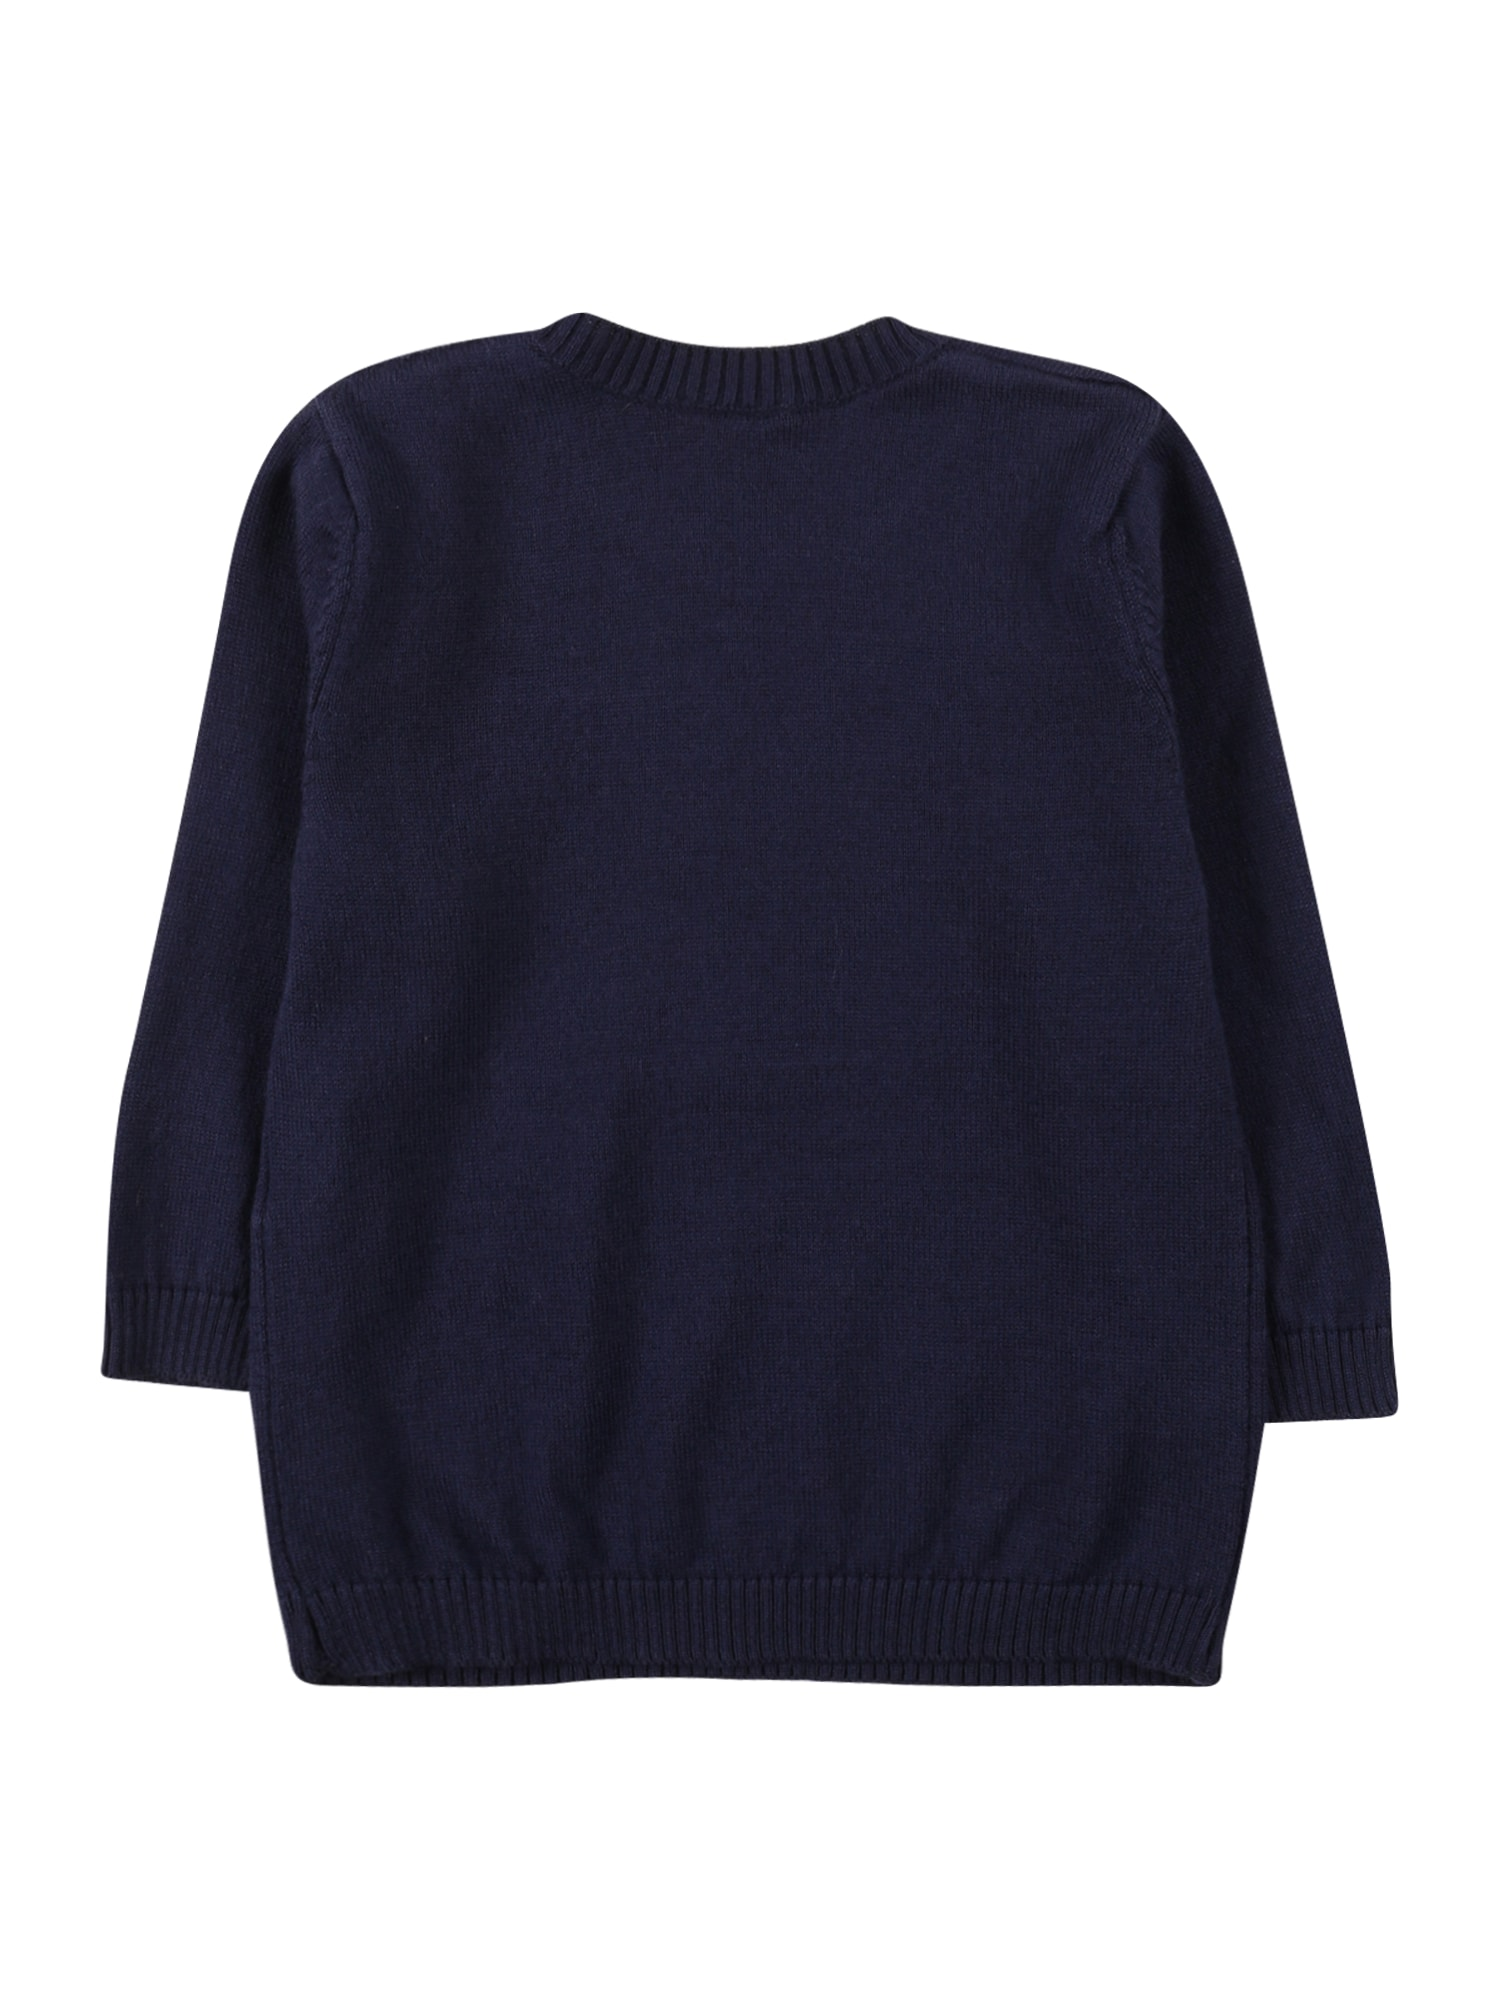 UNITED COLORS OF BENETTON Pull-over  bleu nuit / blanc